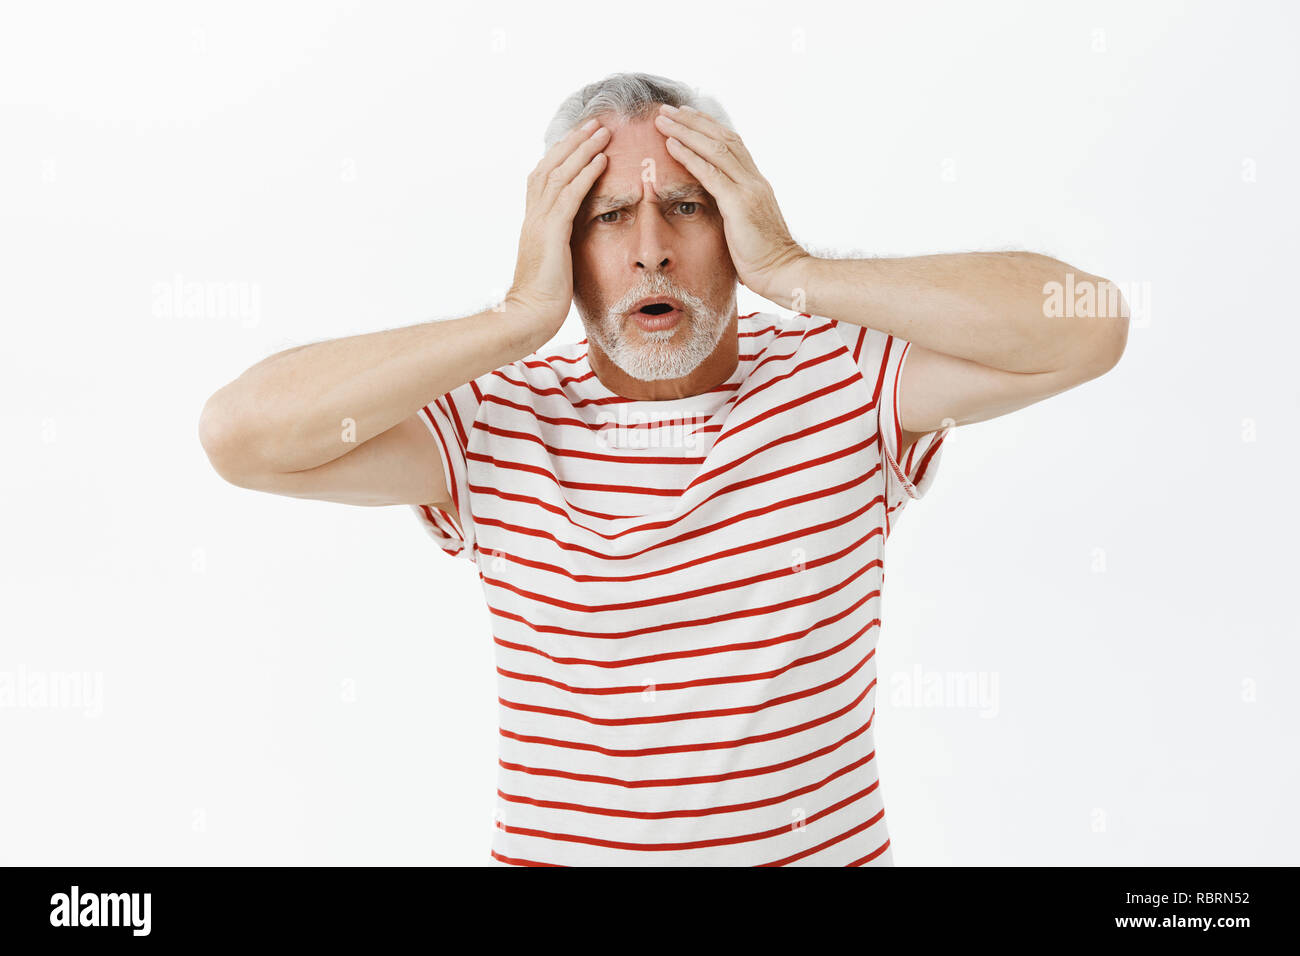 Intense bothered and shocked displeased old man touching head and frowning open mouth looking cocnerned and troubled at camera being in panic not knowing what do how solve problem - Stock Image